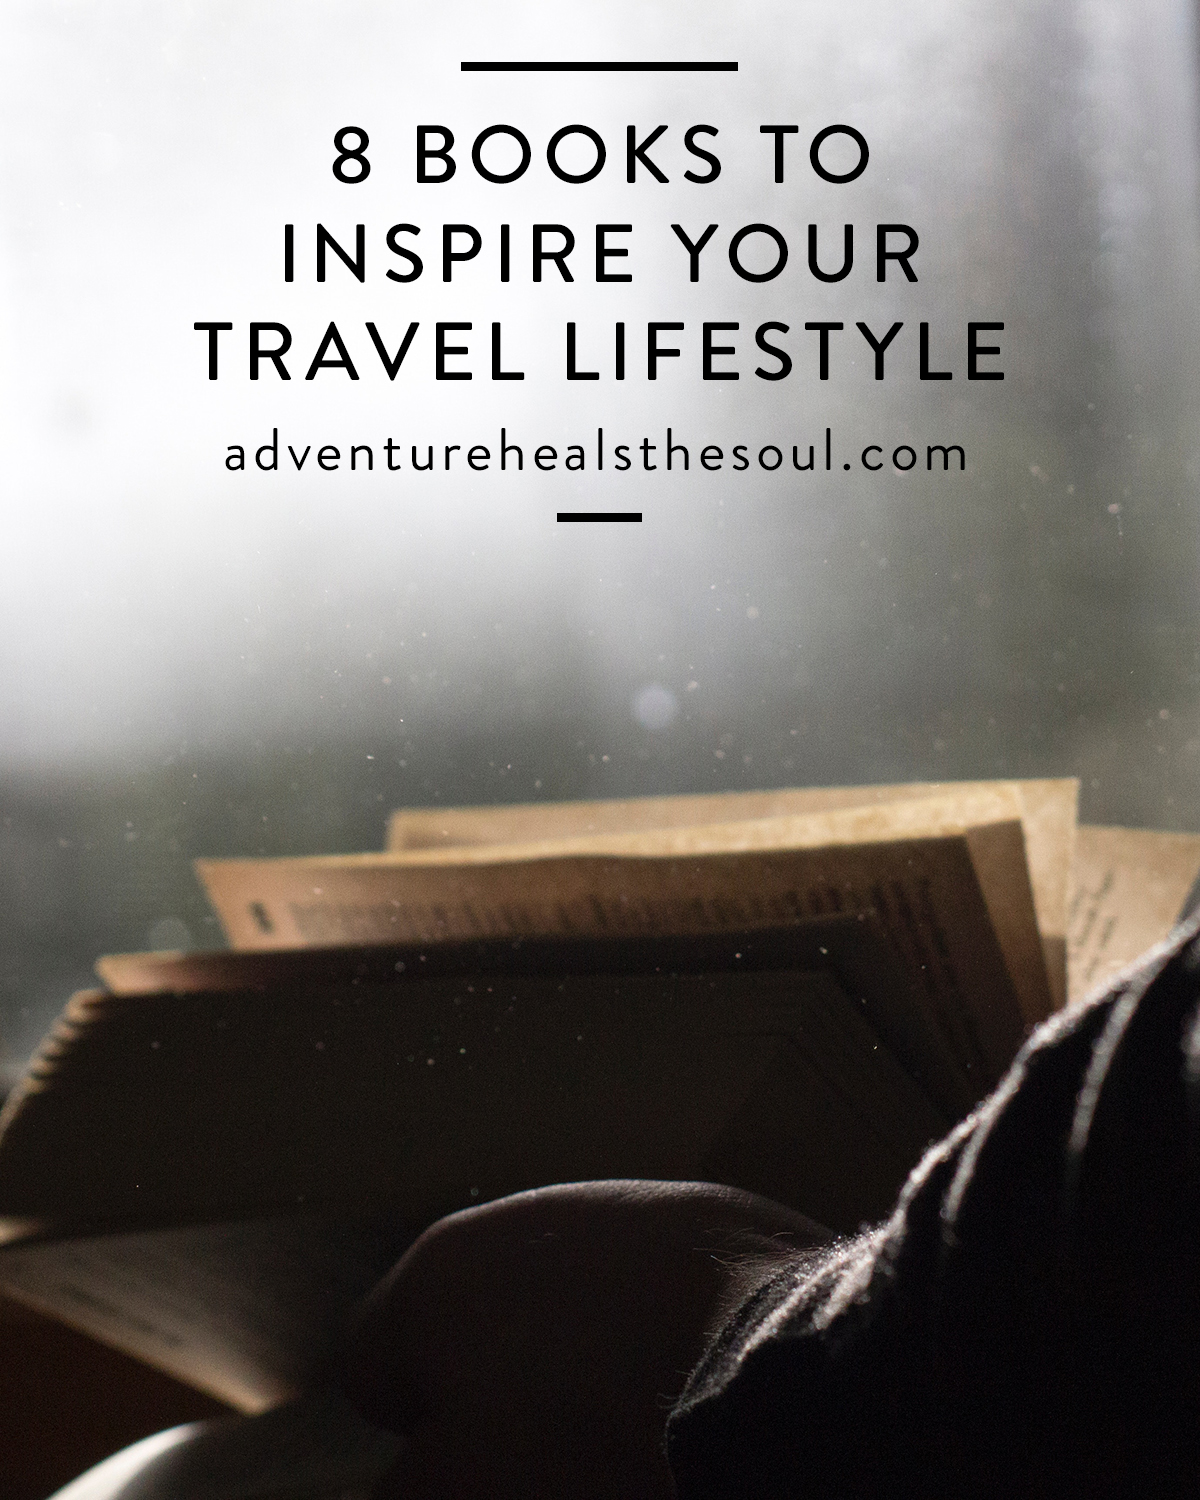 8 Books To Inspire Your Travel Lifestyle